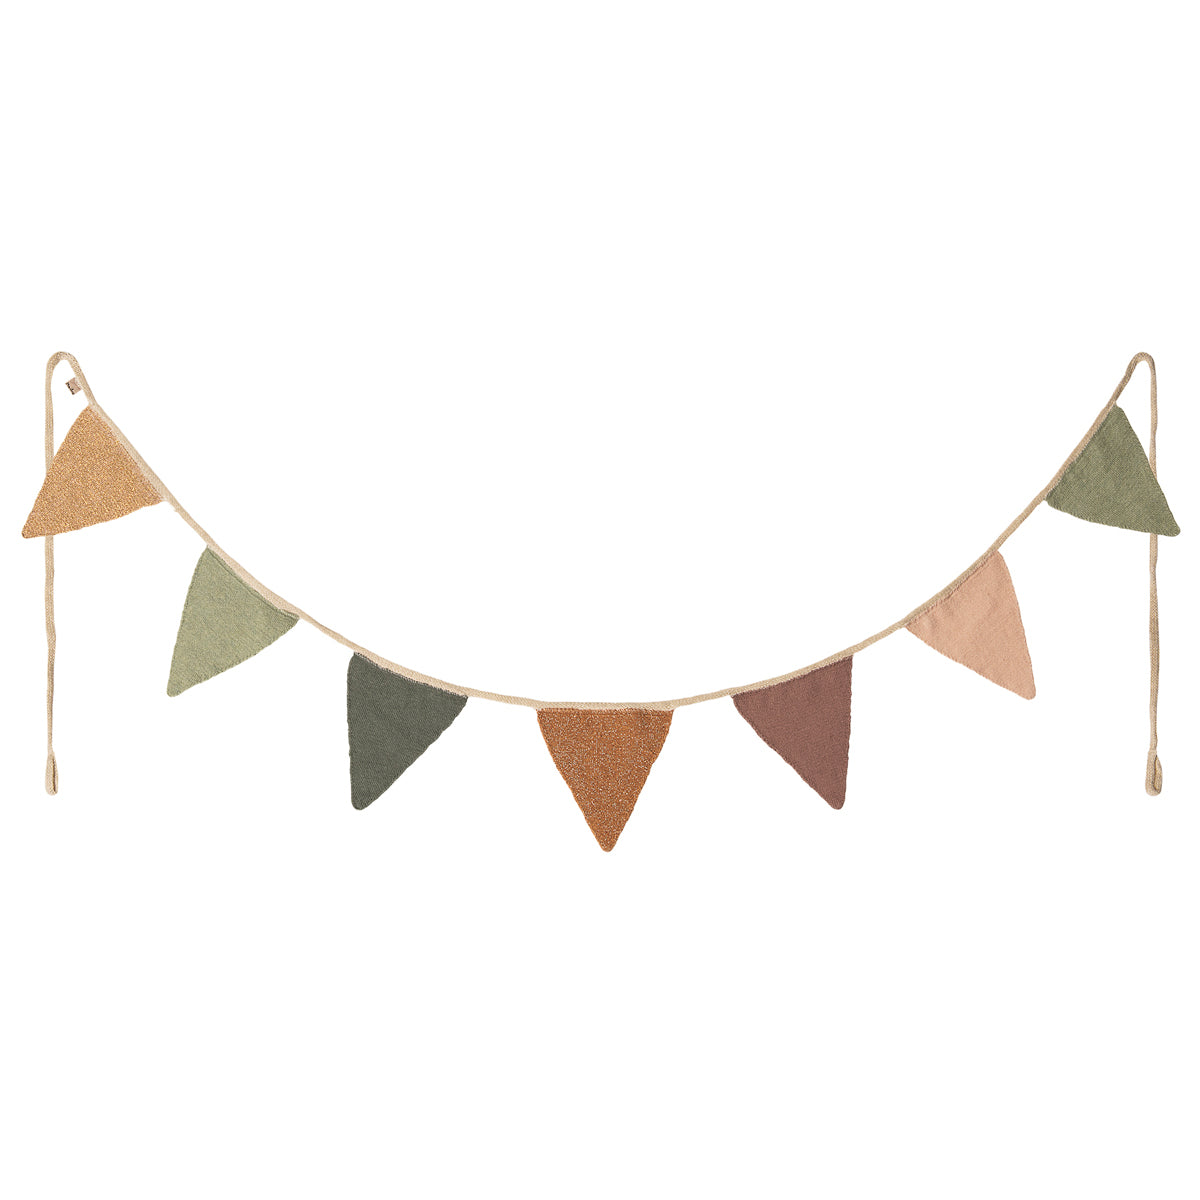 Maileg Garland 7 flags knit - Rose Children's interiors